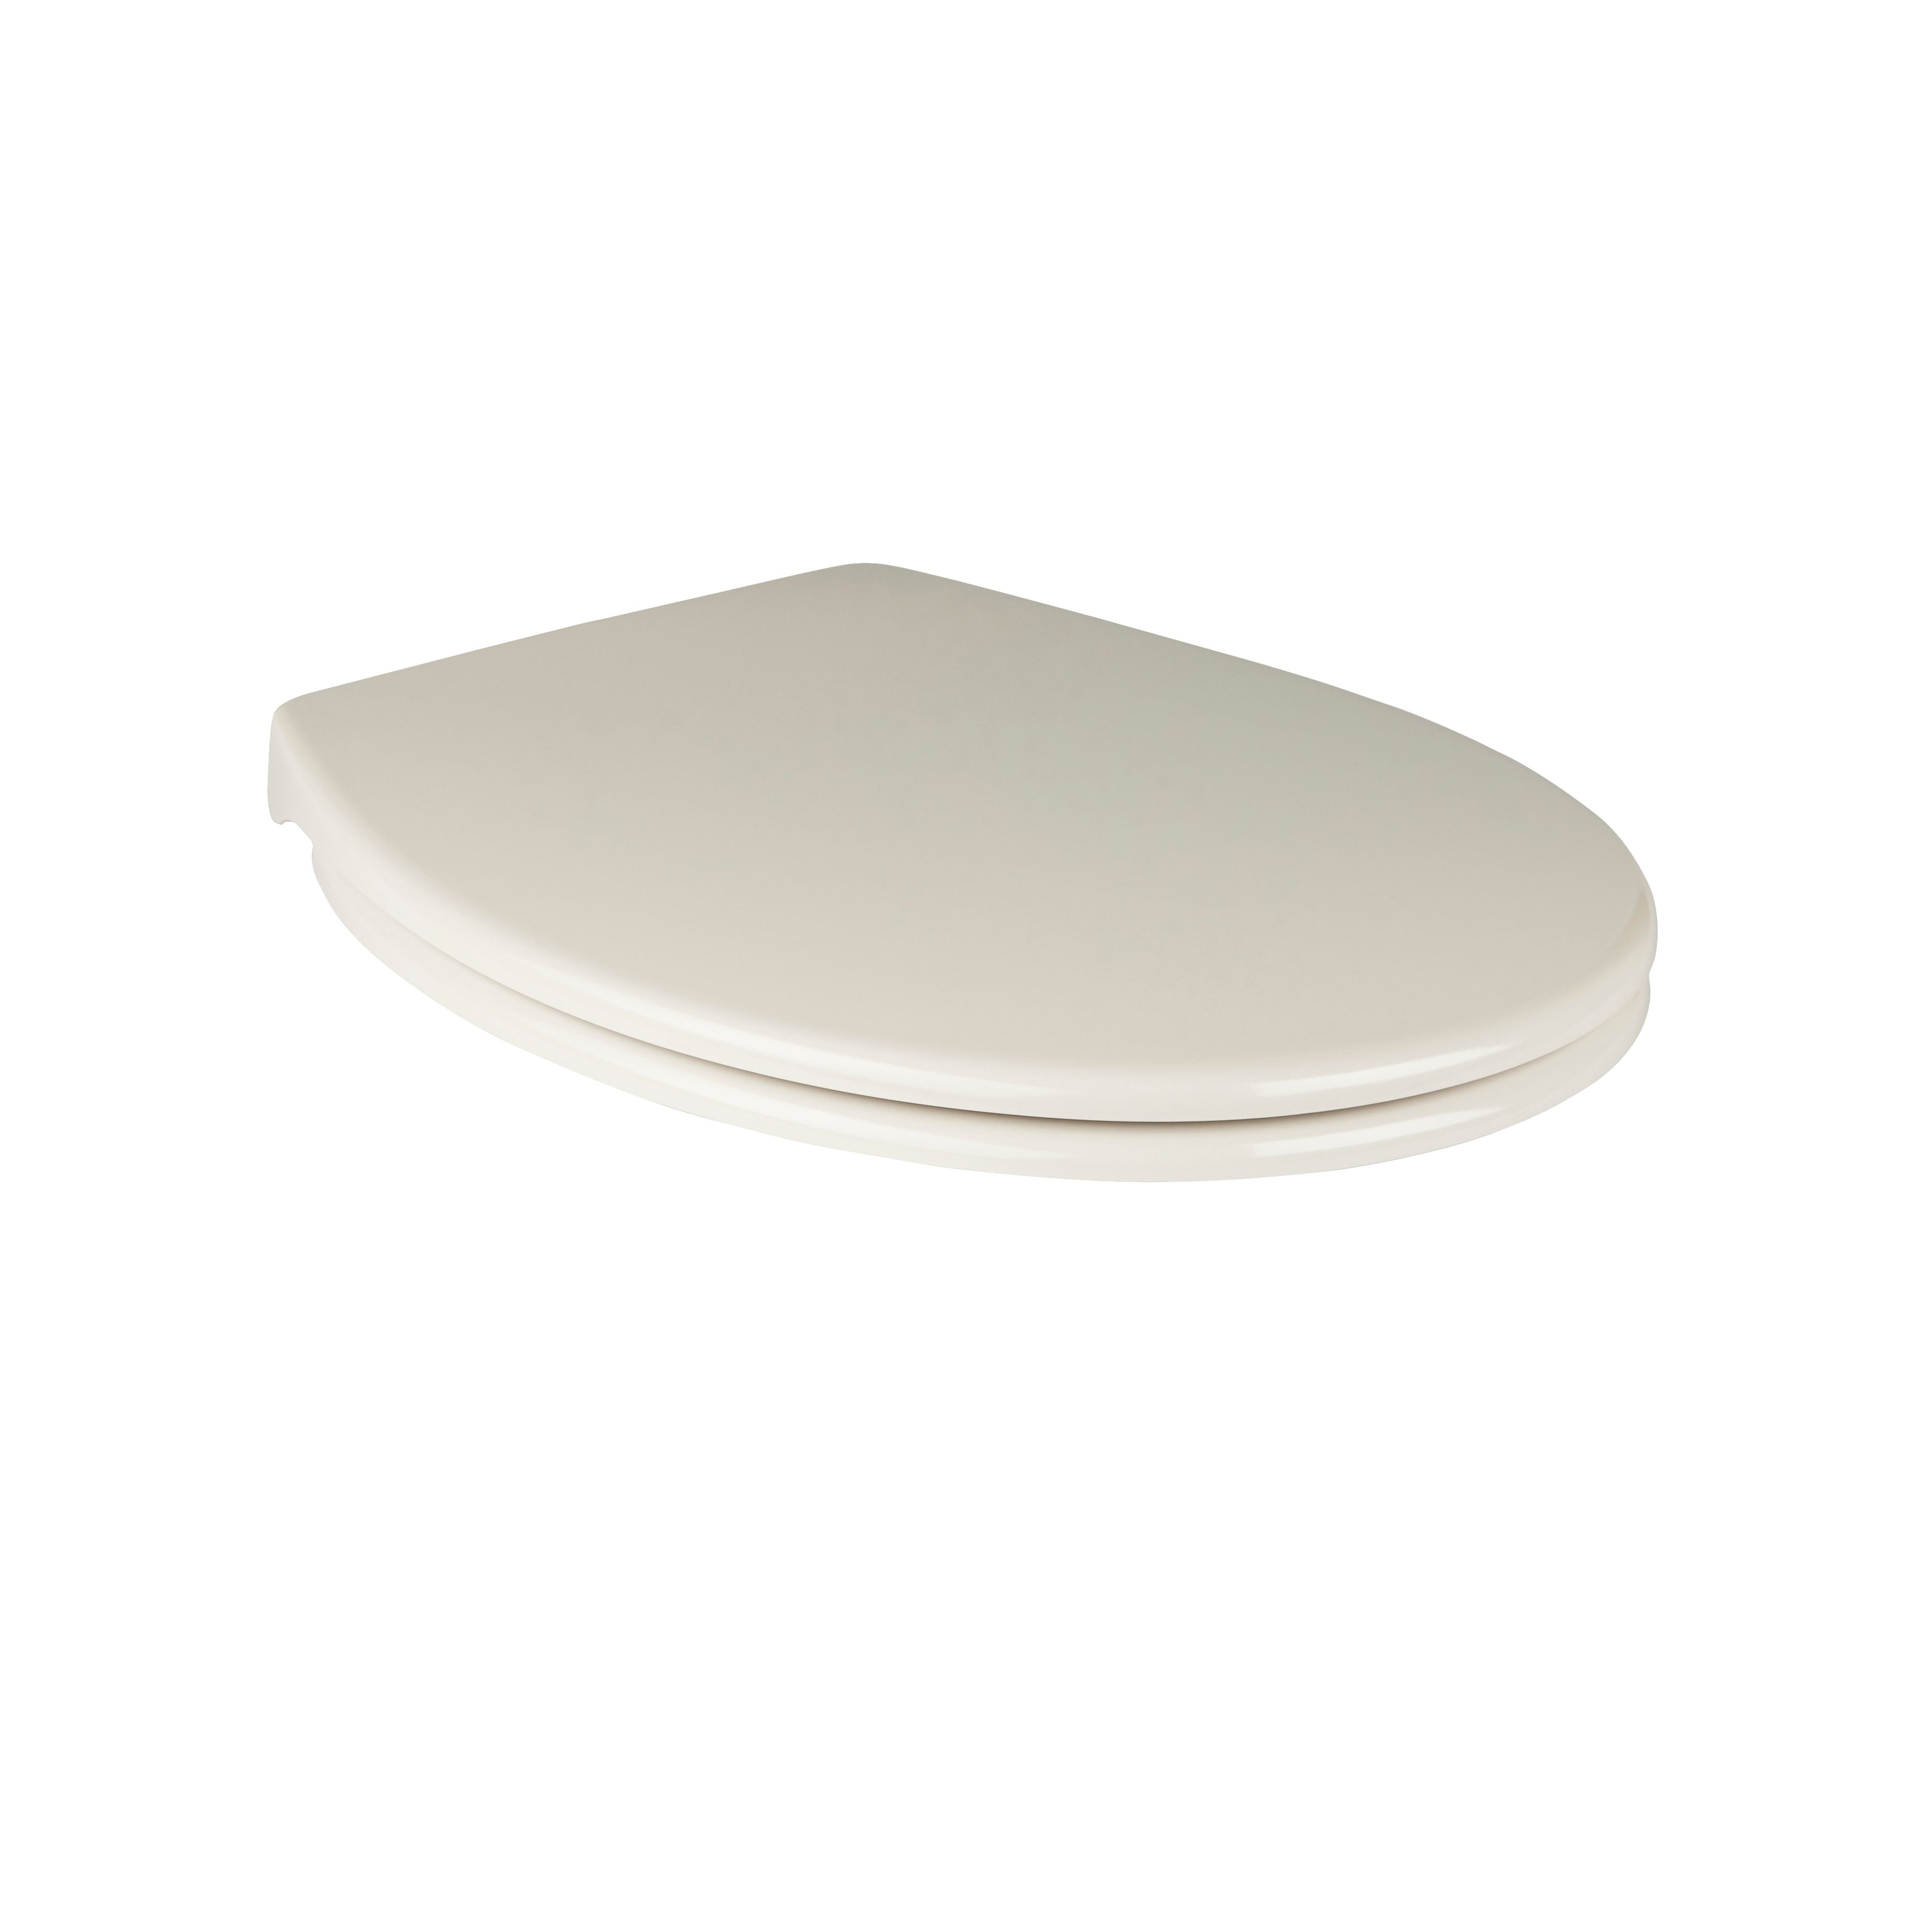 Cooke Lewis Diani Cream Top Fix Soft Close Toilet Seat